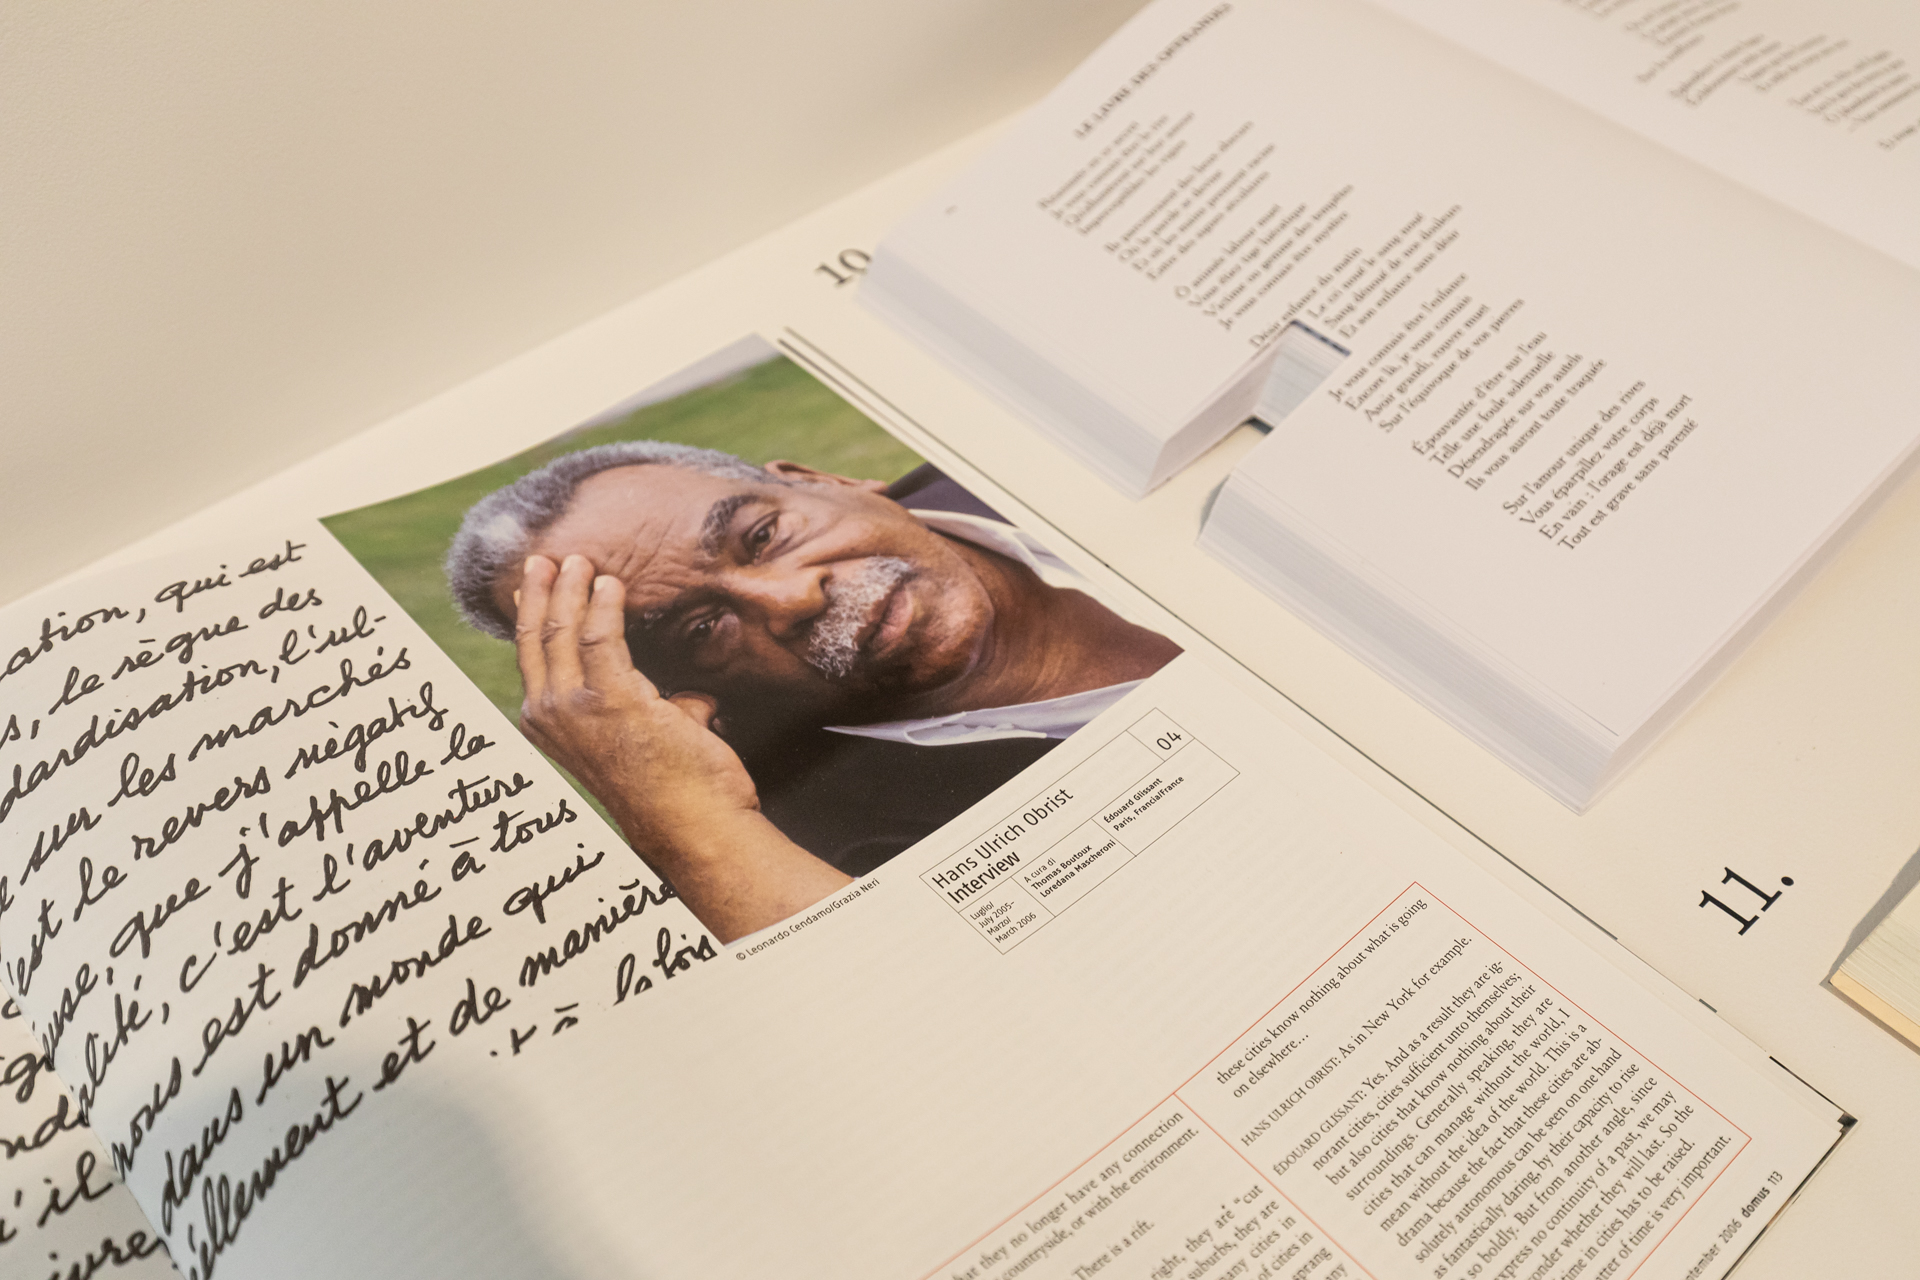 A selection from Hans Ulrich Obrist's archives on Édouard Glissant, at LUMA Arles, 2021. Photo: Adrian Deweerdt.